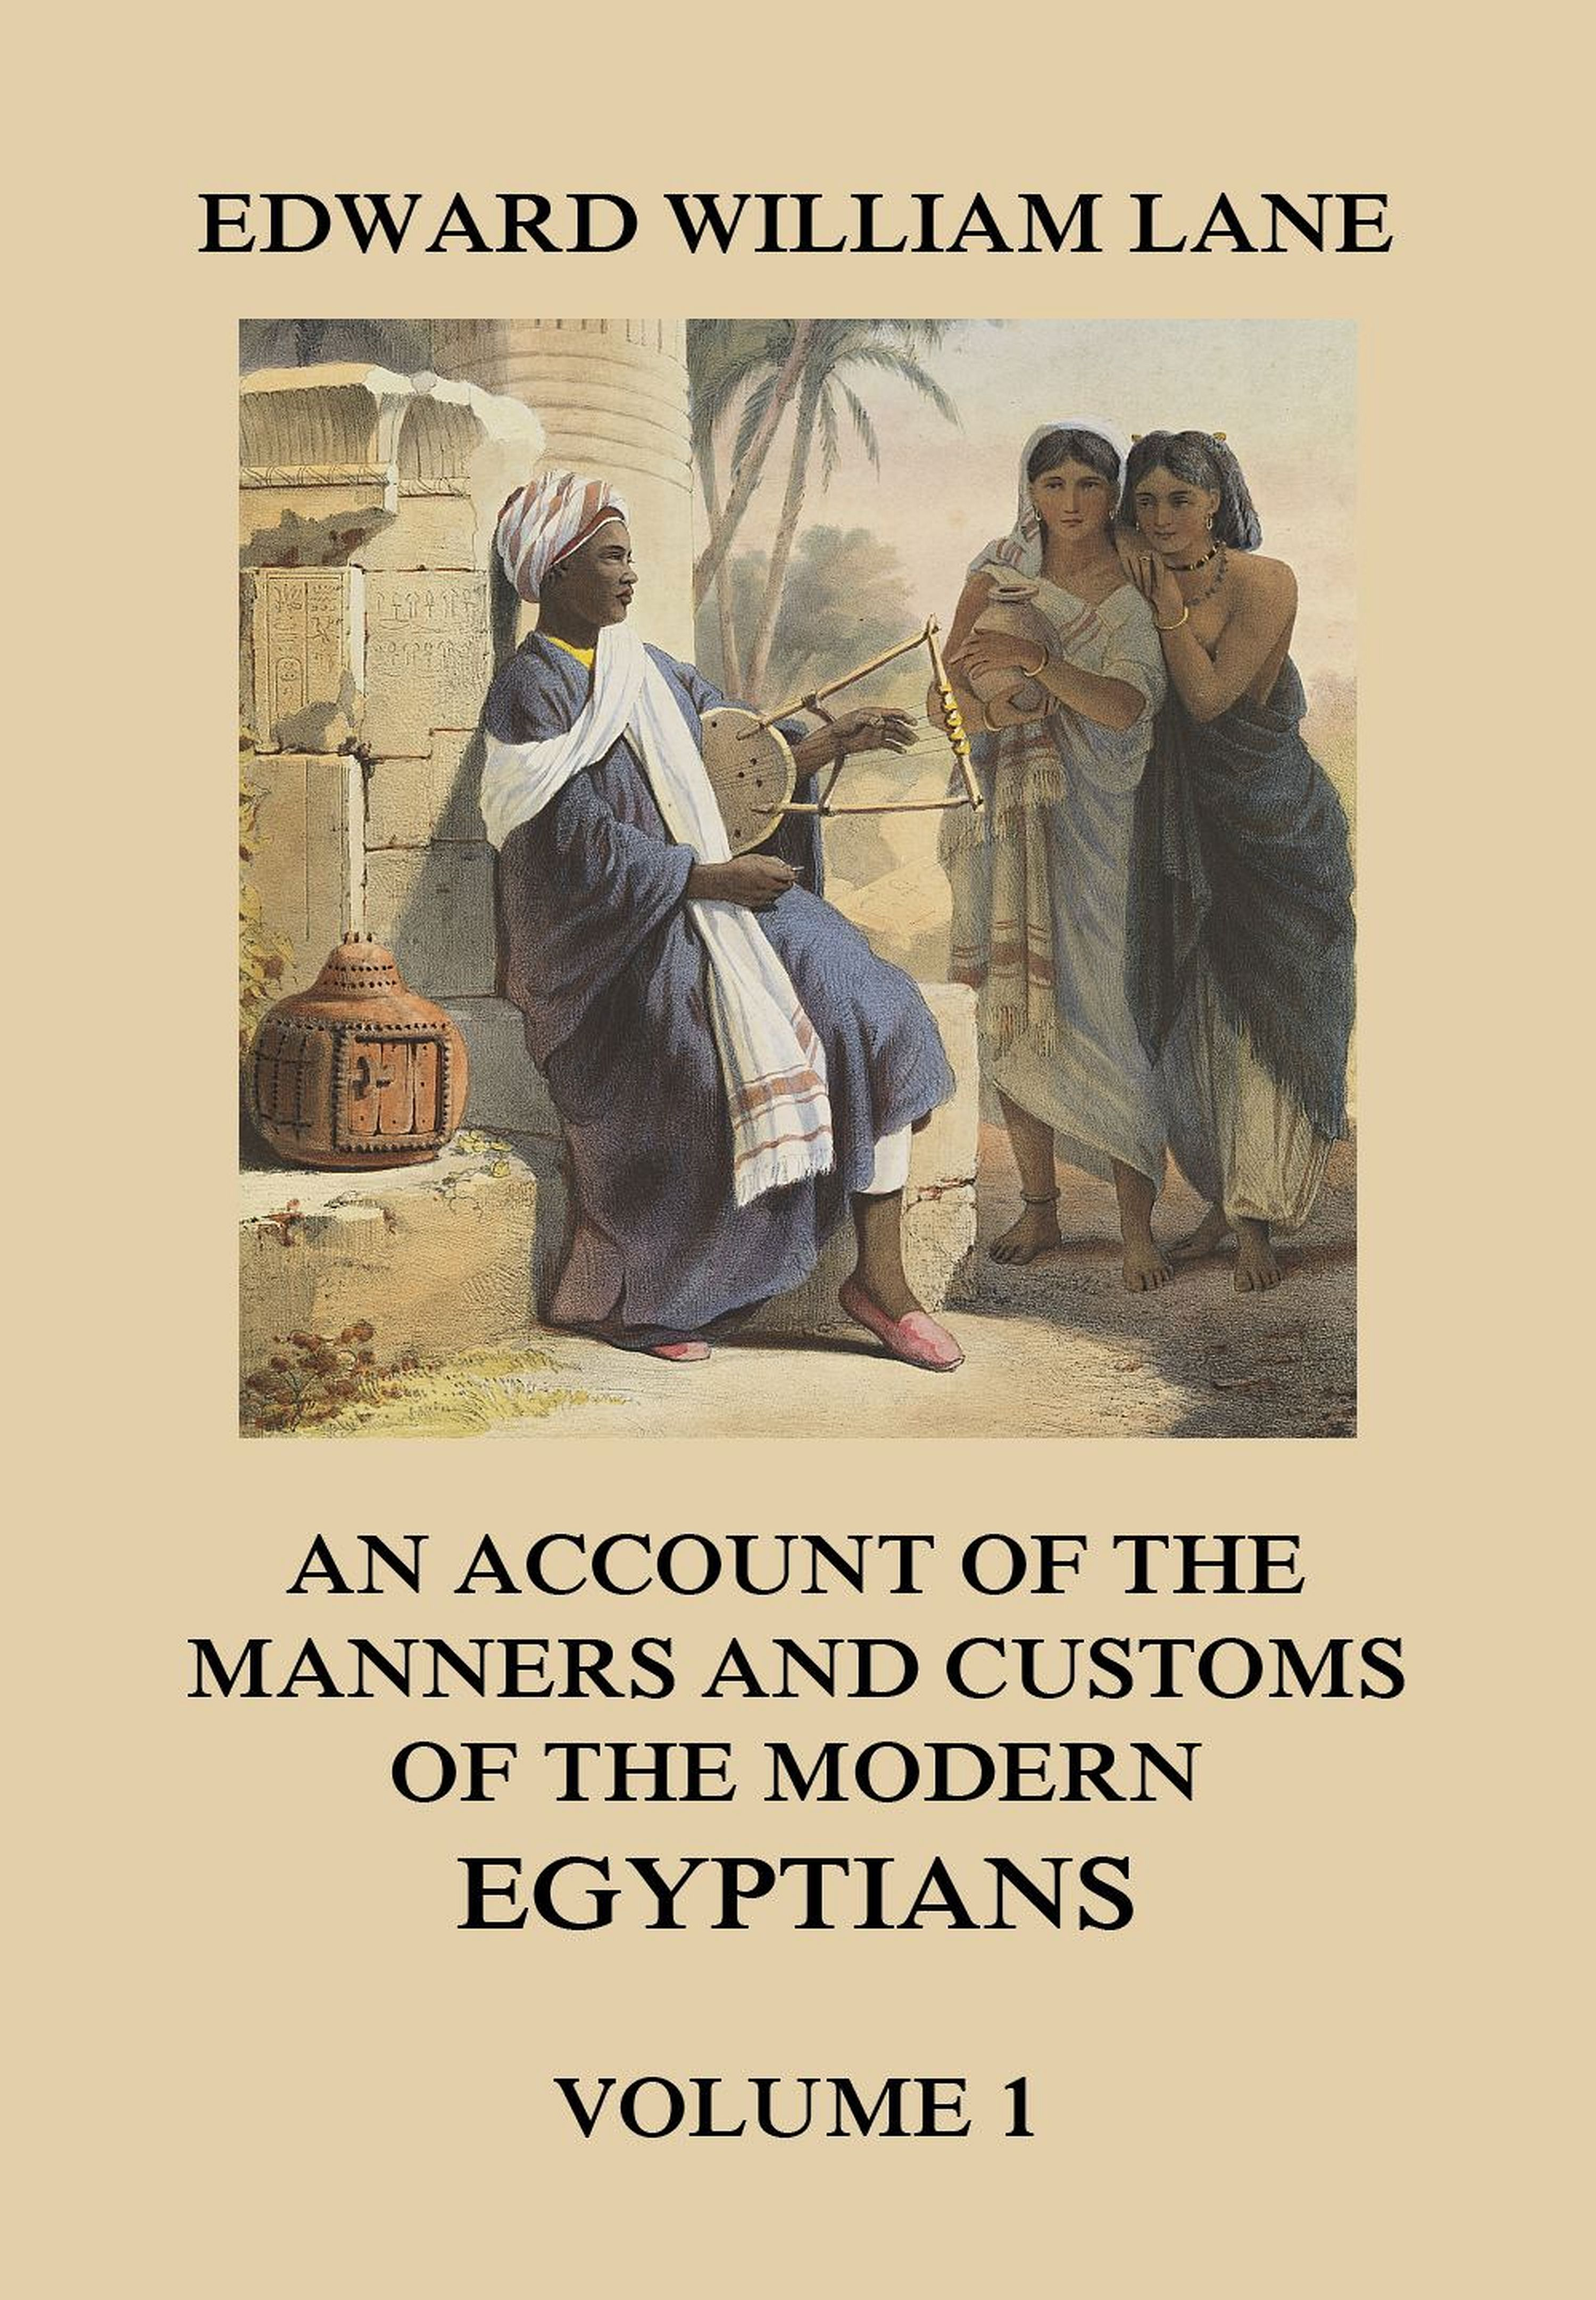 Edward William Lane An Account of The Manners and Customs of The Modern Egyptians, Volume 1 dawson william james literary leaders of modern england selected chapters from the makers of modern poetry and the makers of modern prose